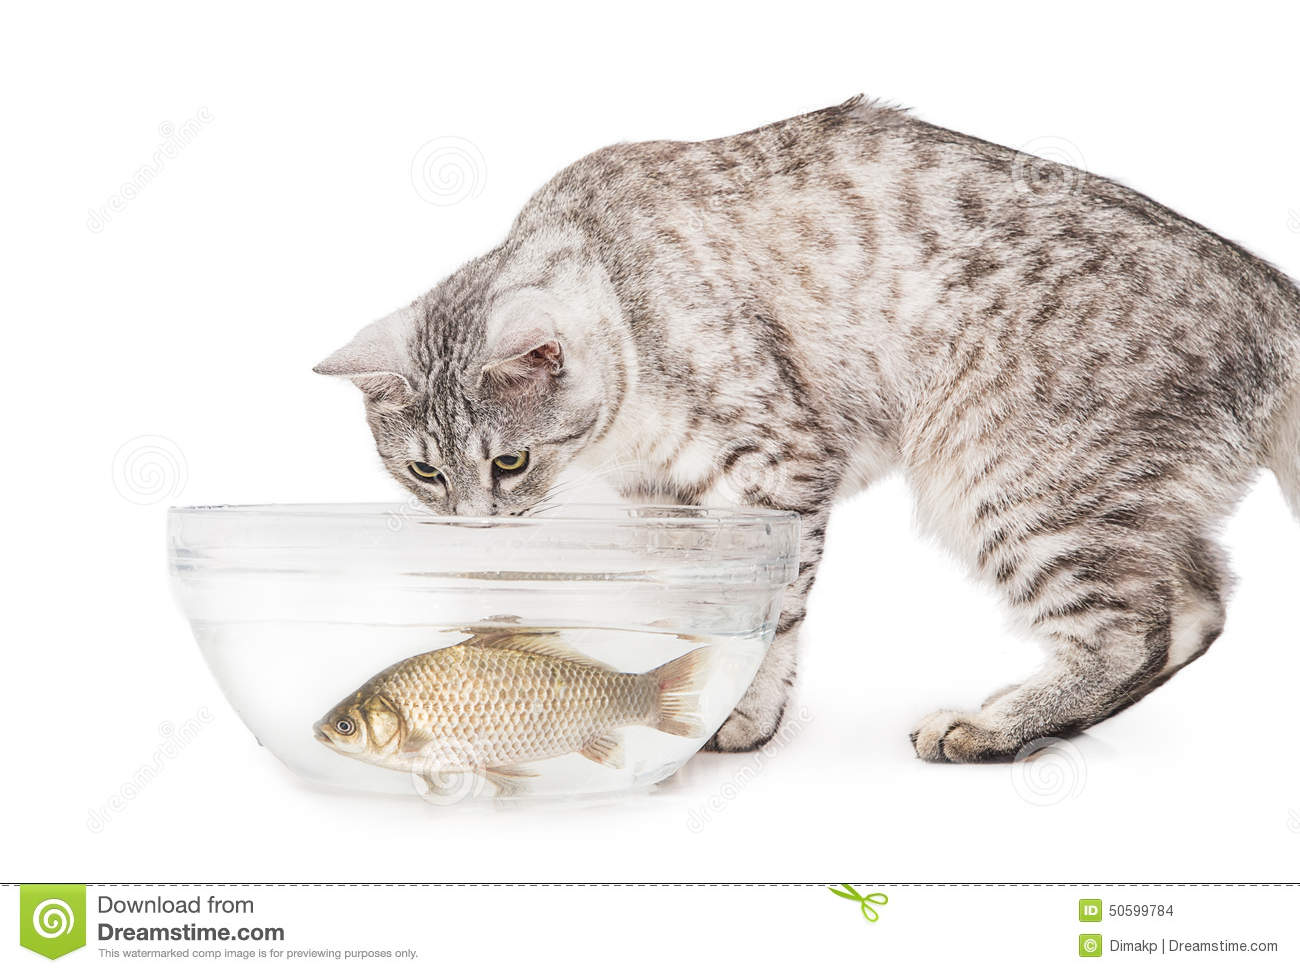 how to cook white fish for cats